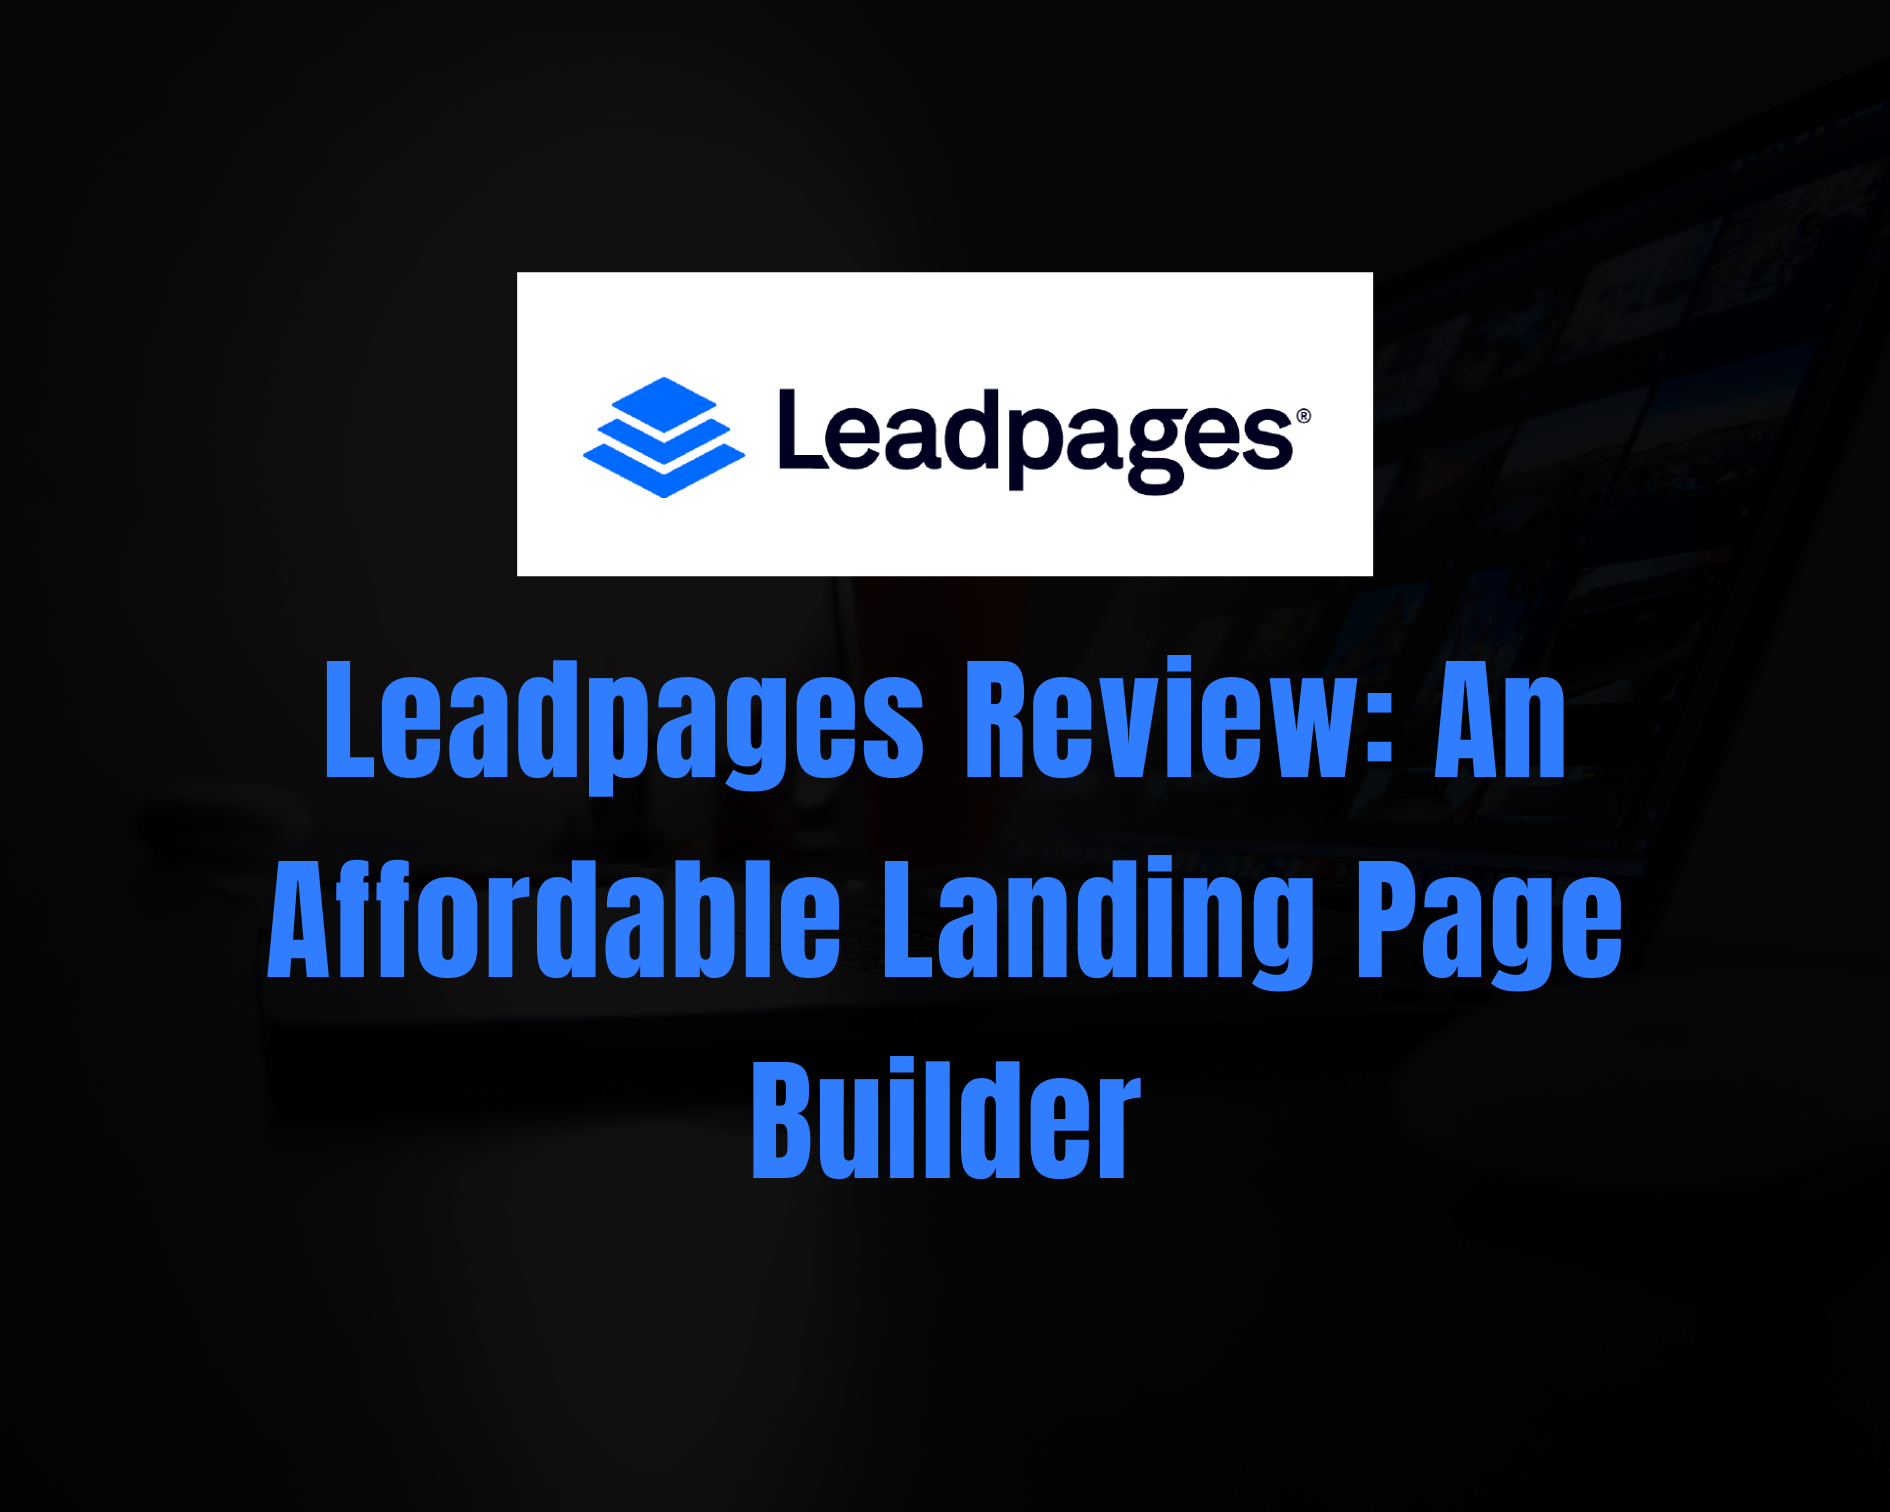 Leadpages Review: An Best Affordable Landing Page Builder